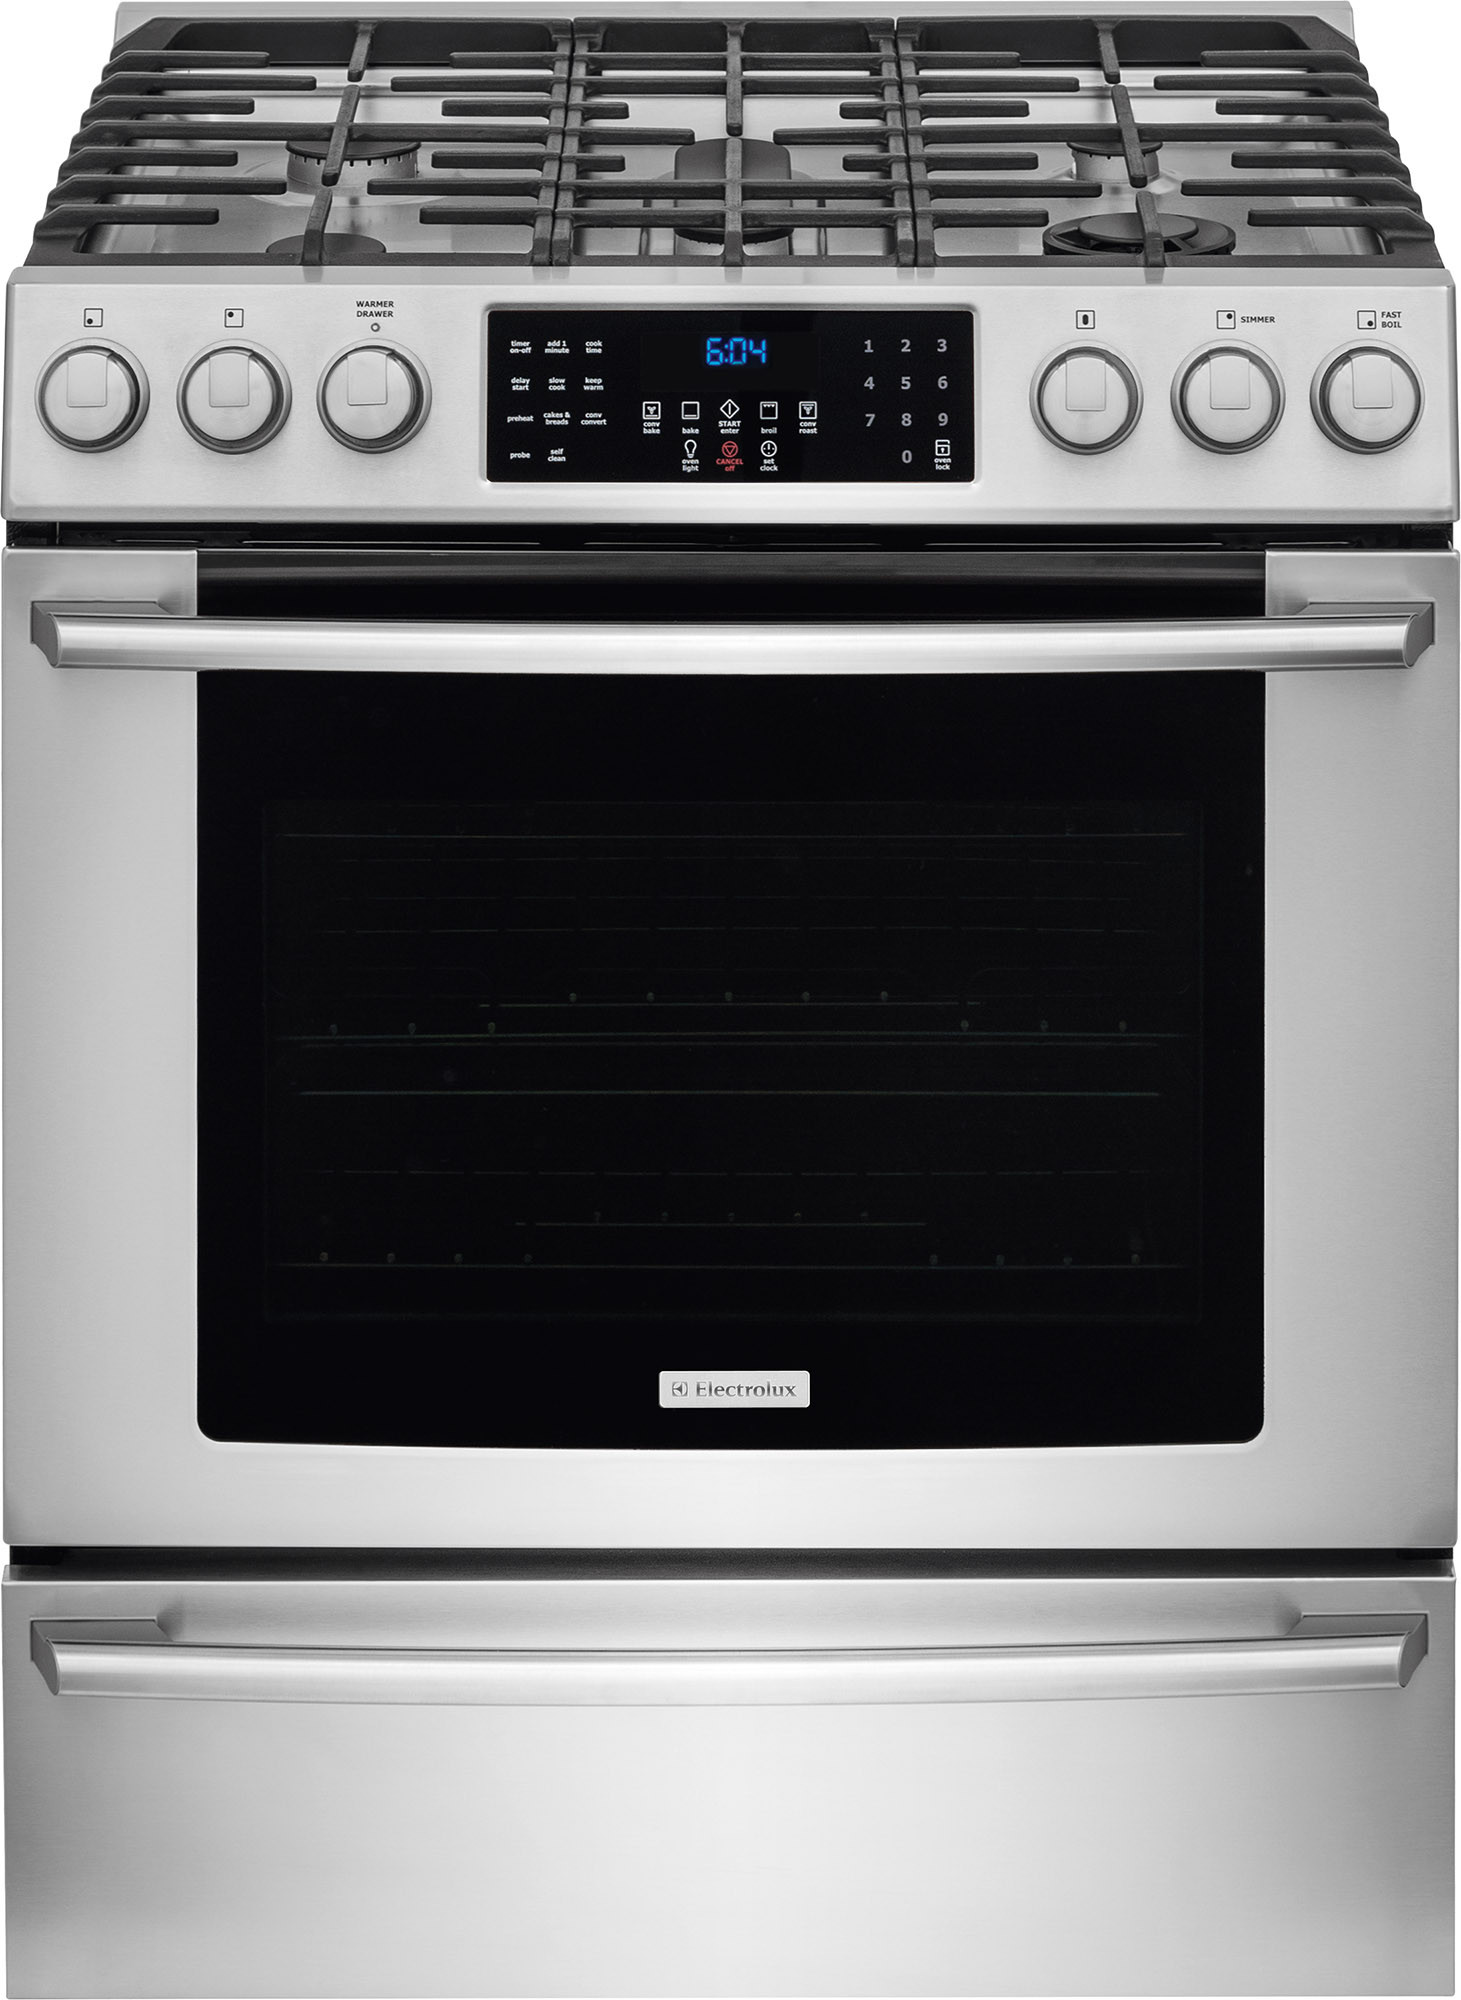 Gas Range With Gas Oven Electrolux Gas Ranges Electrolux Electric Ranges Electrolux Stoves